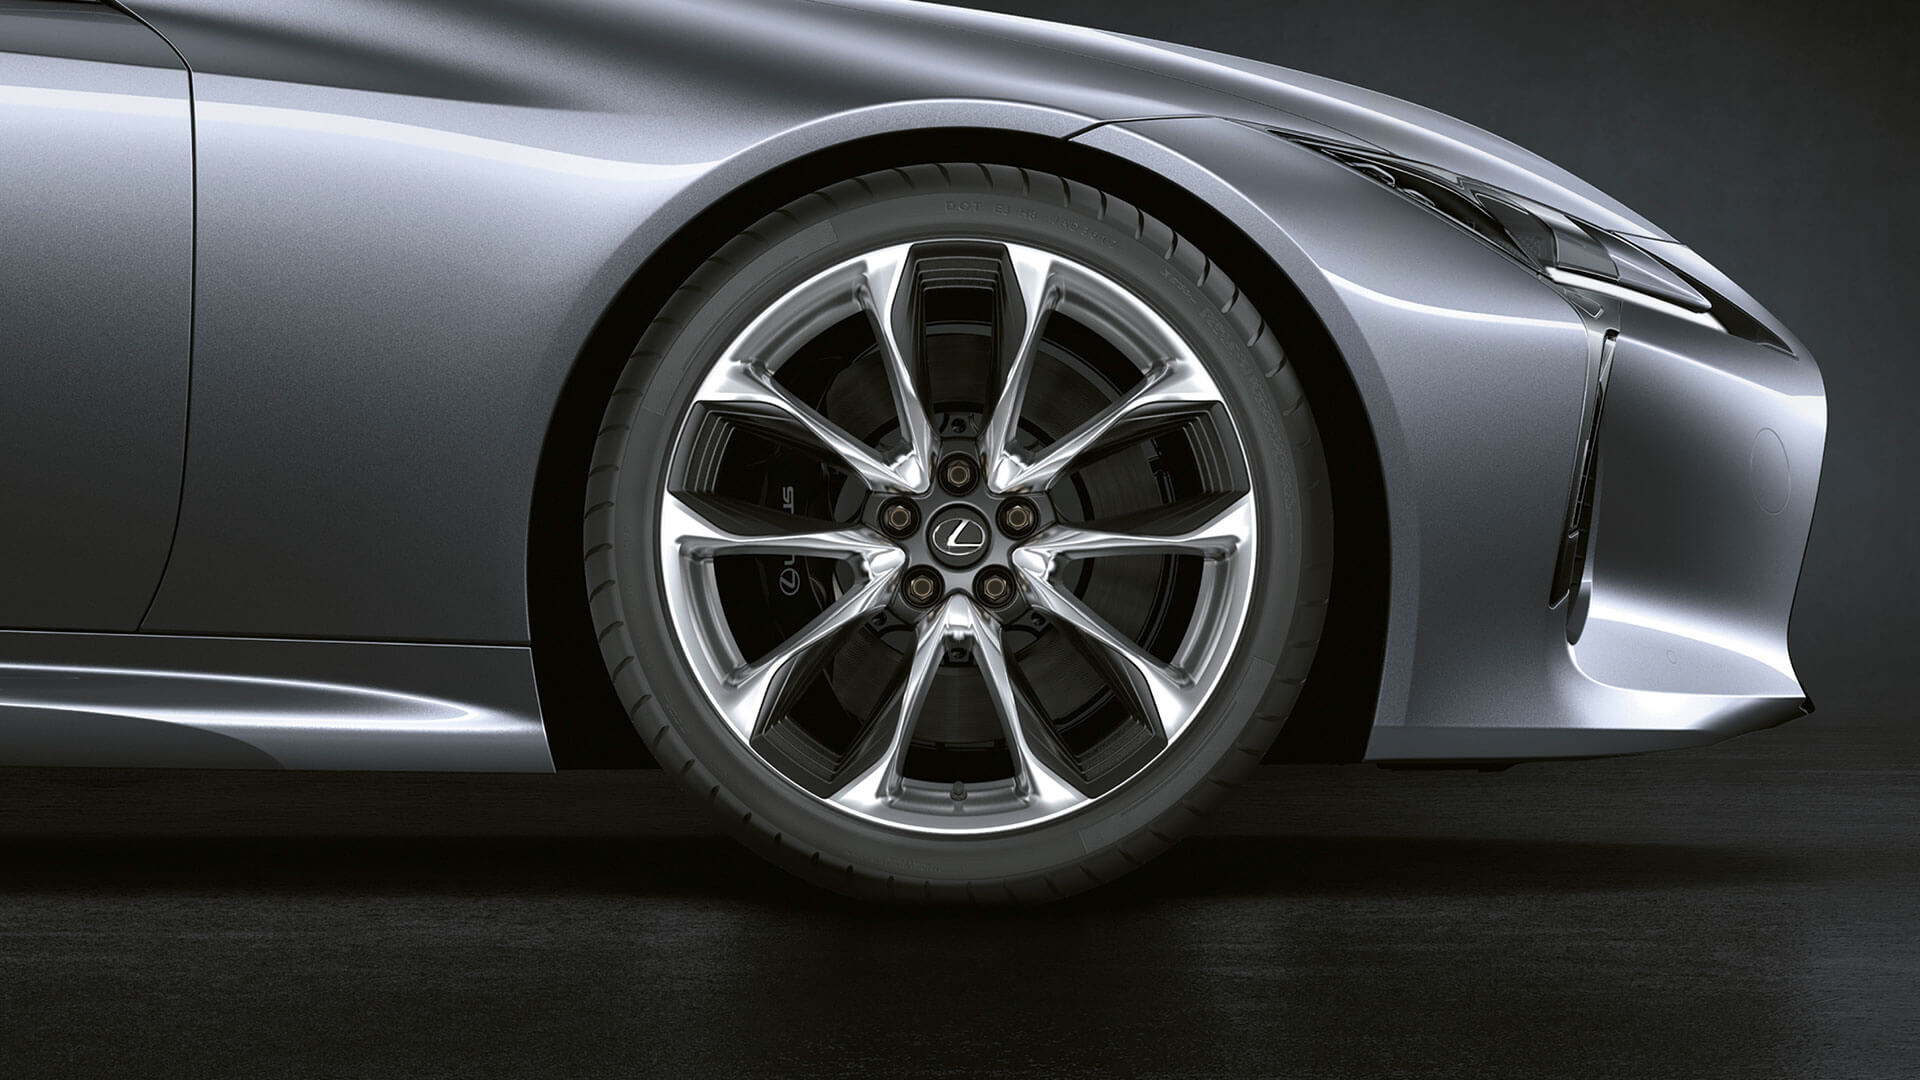 2017 lexus lc 500h features alloy wheels